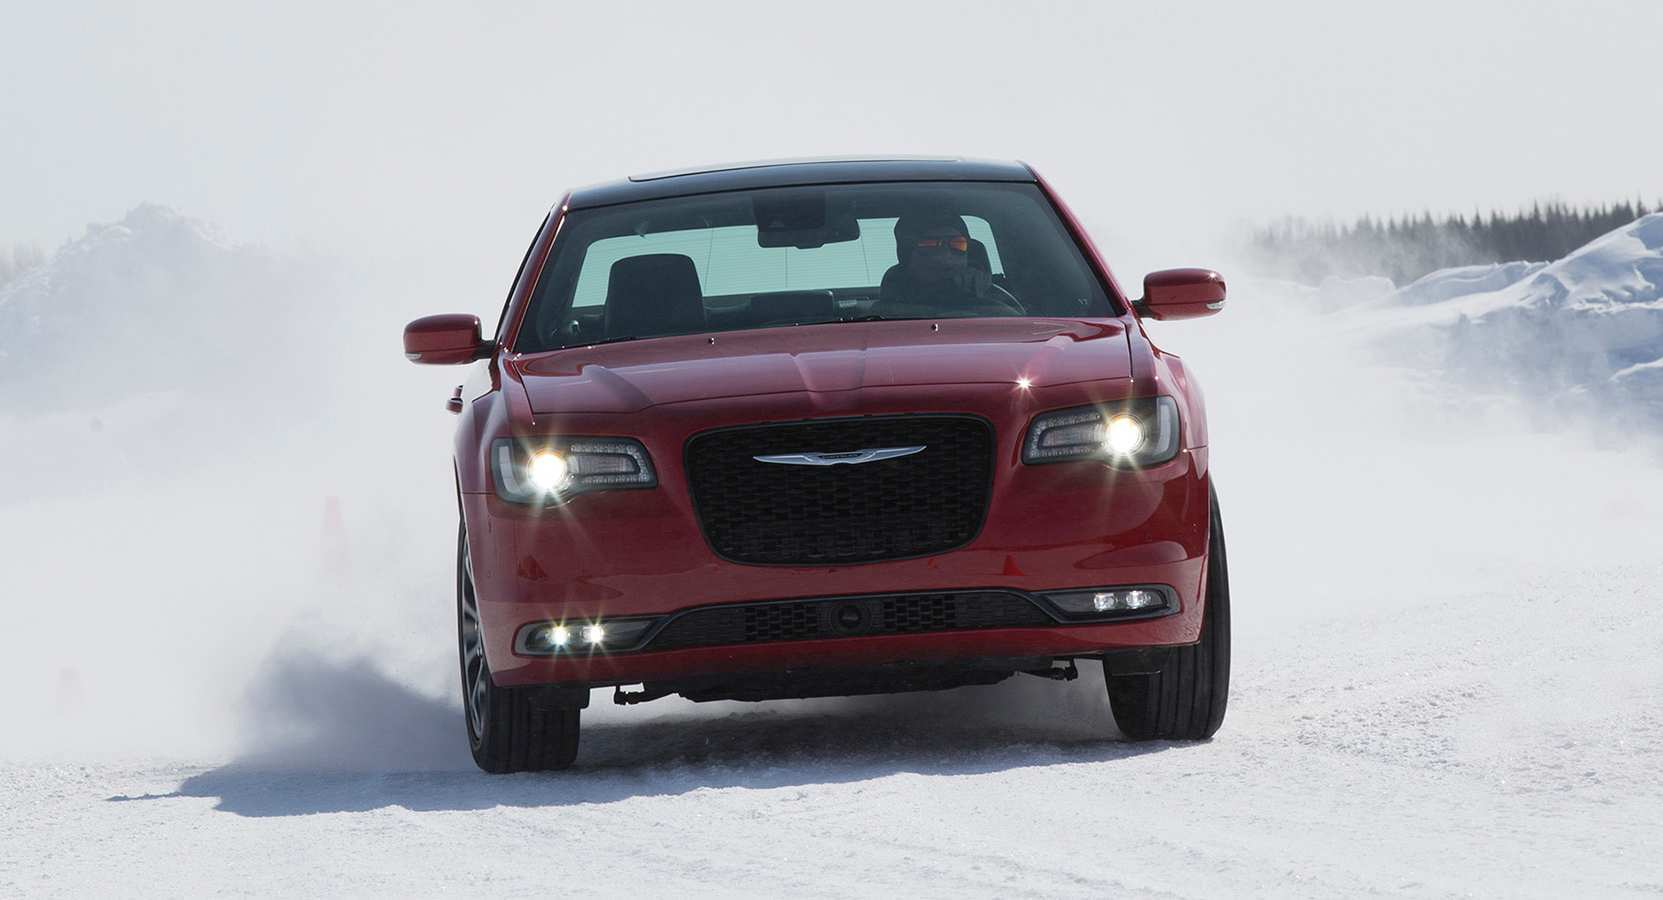 86 New 2020 Chrysler Aspen Price Design And Review